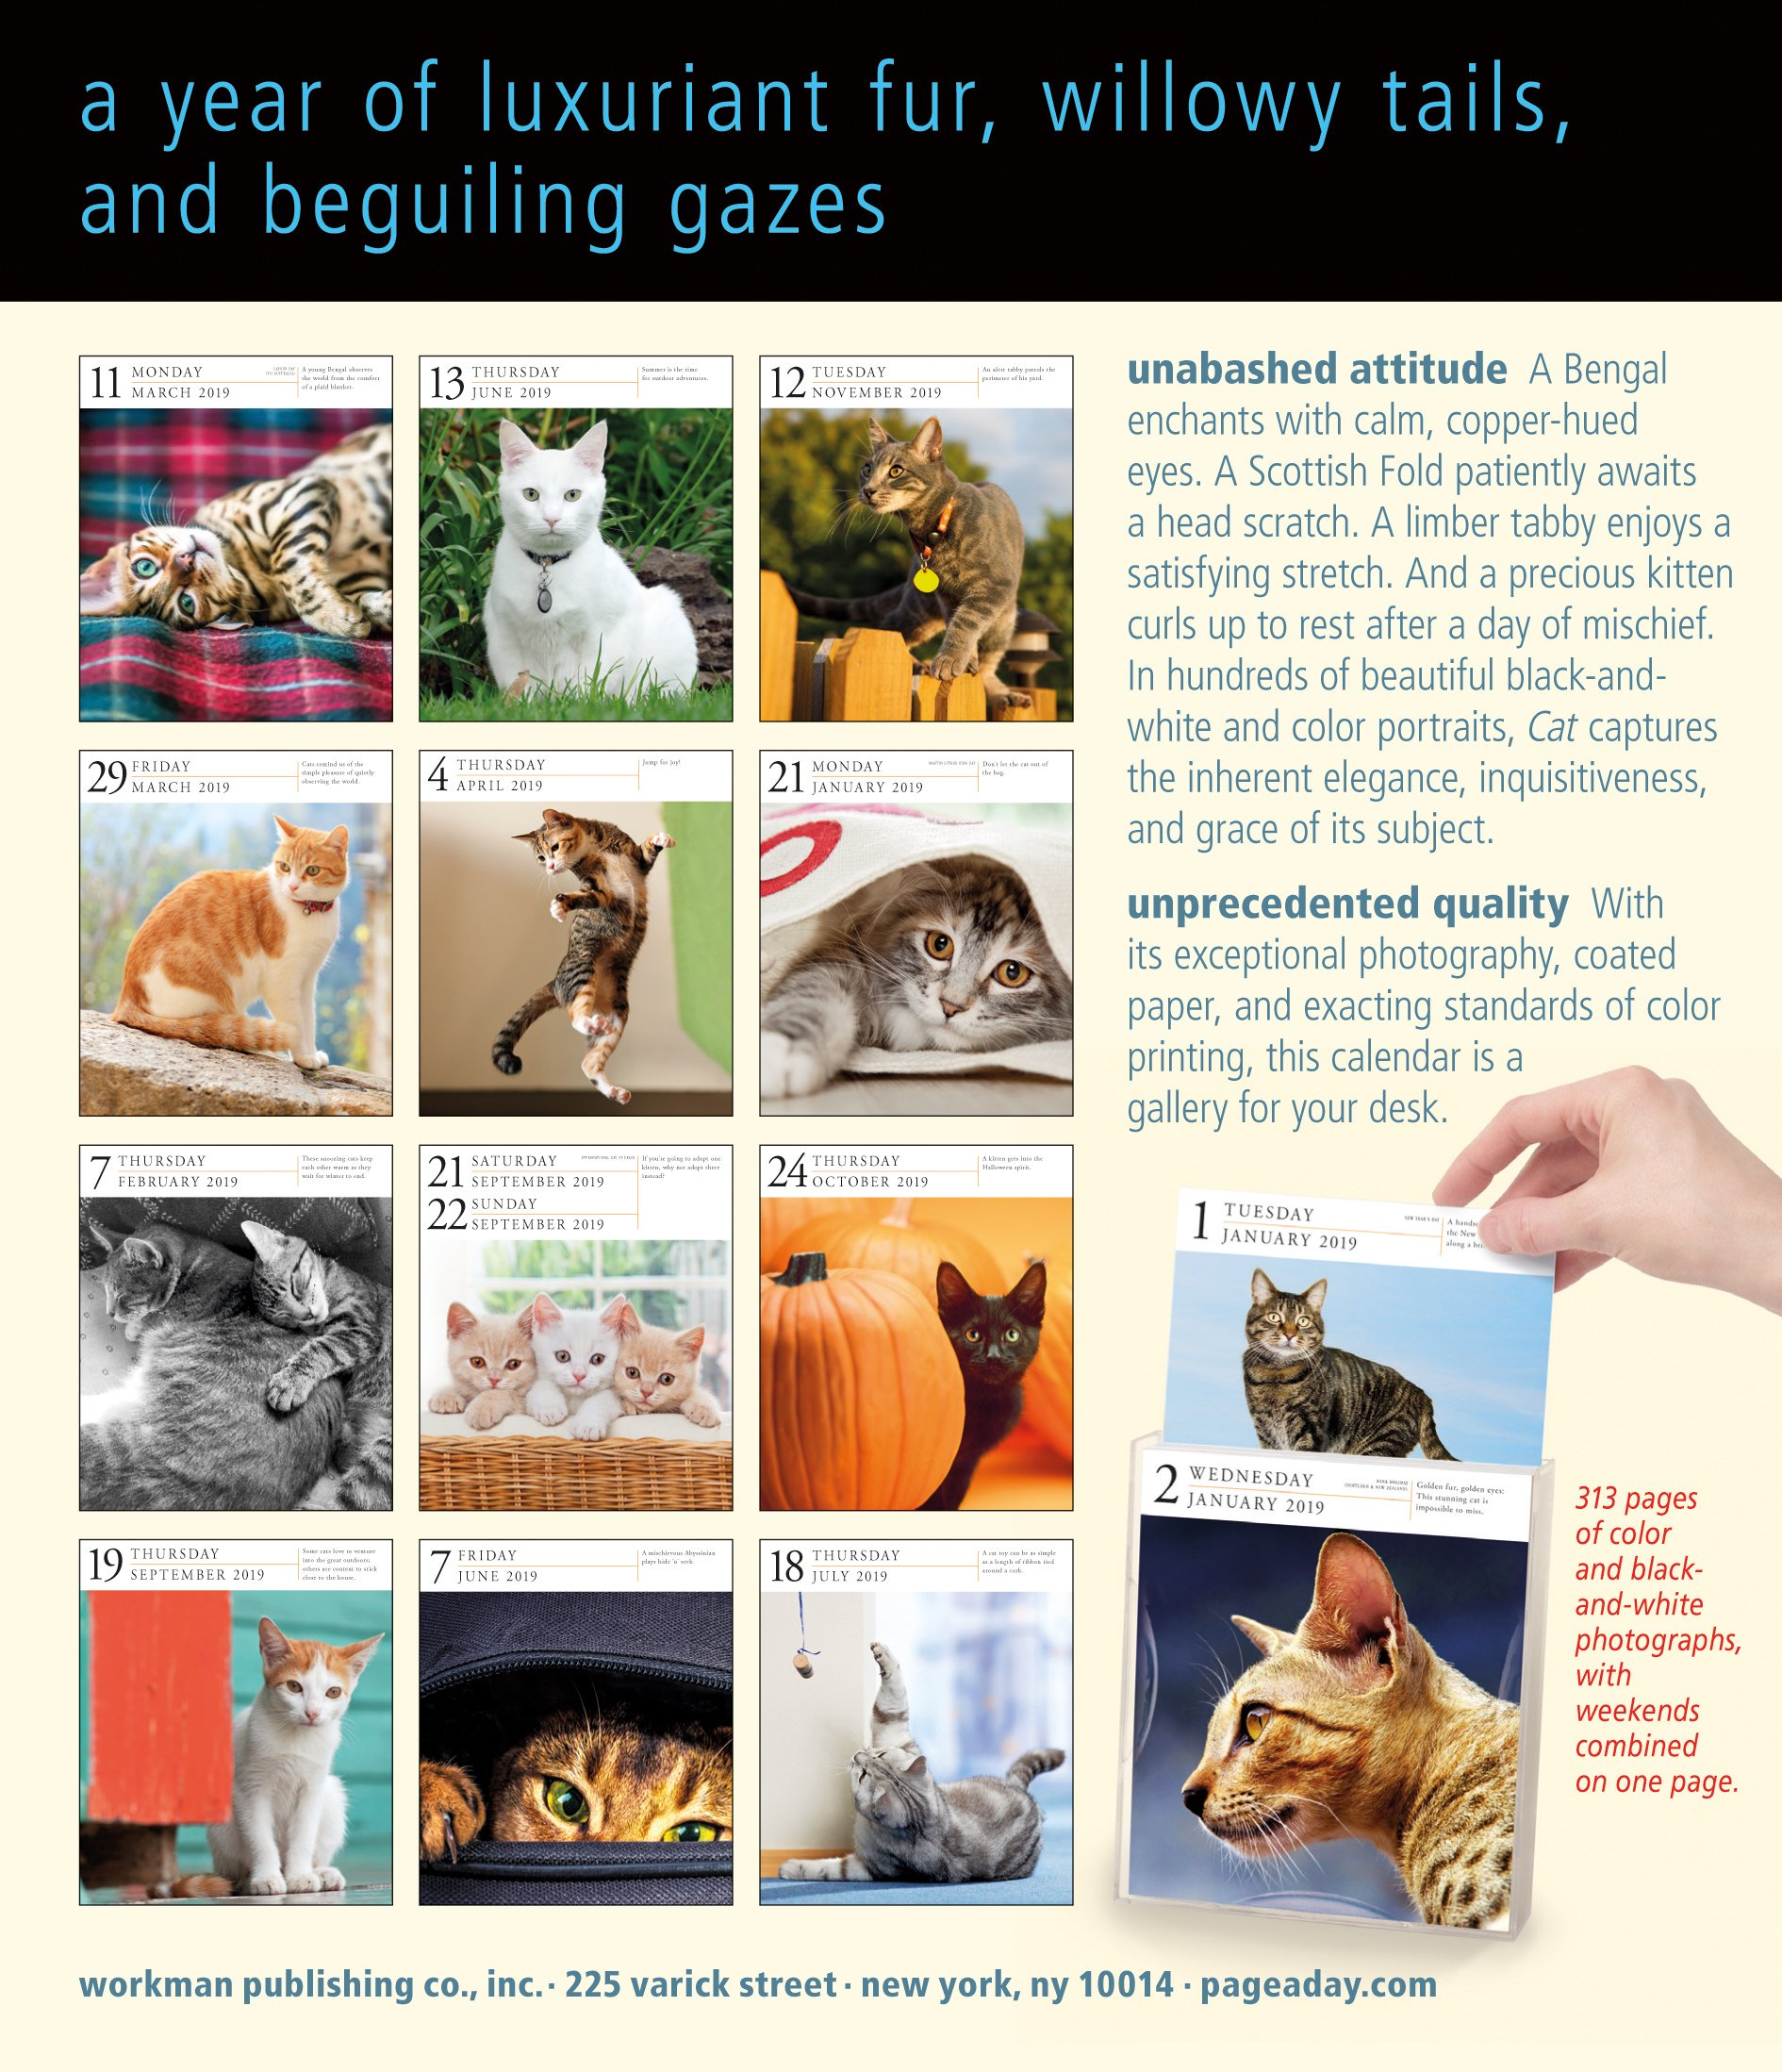 Cat Page-A-Day Gallery Desk Calendar 2019 [6.25'' x 7.25'' Inches] by 2019 Calendars (Image #2)